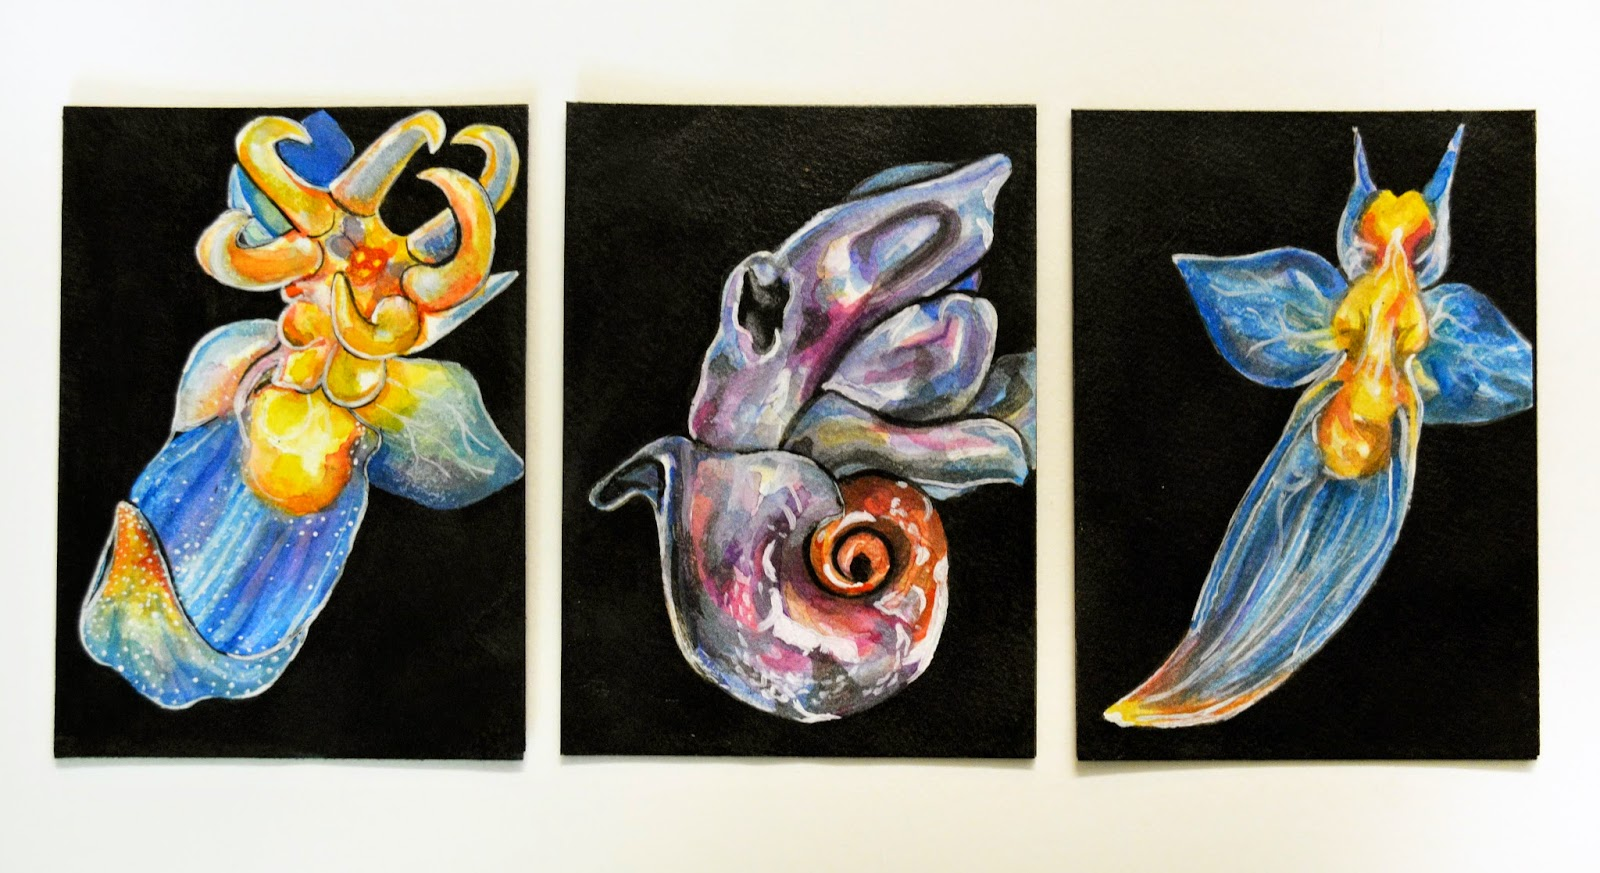 https://www.etsy.com/listing/189339922/endangered-pteropods-paintings-3